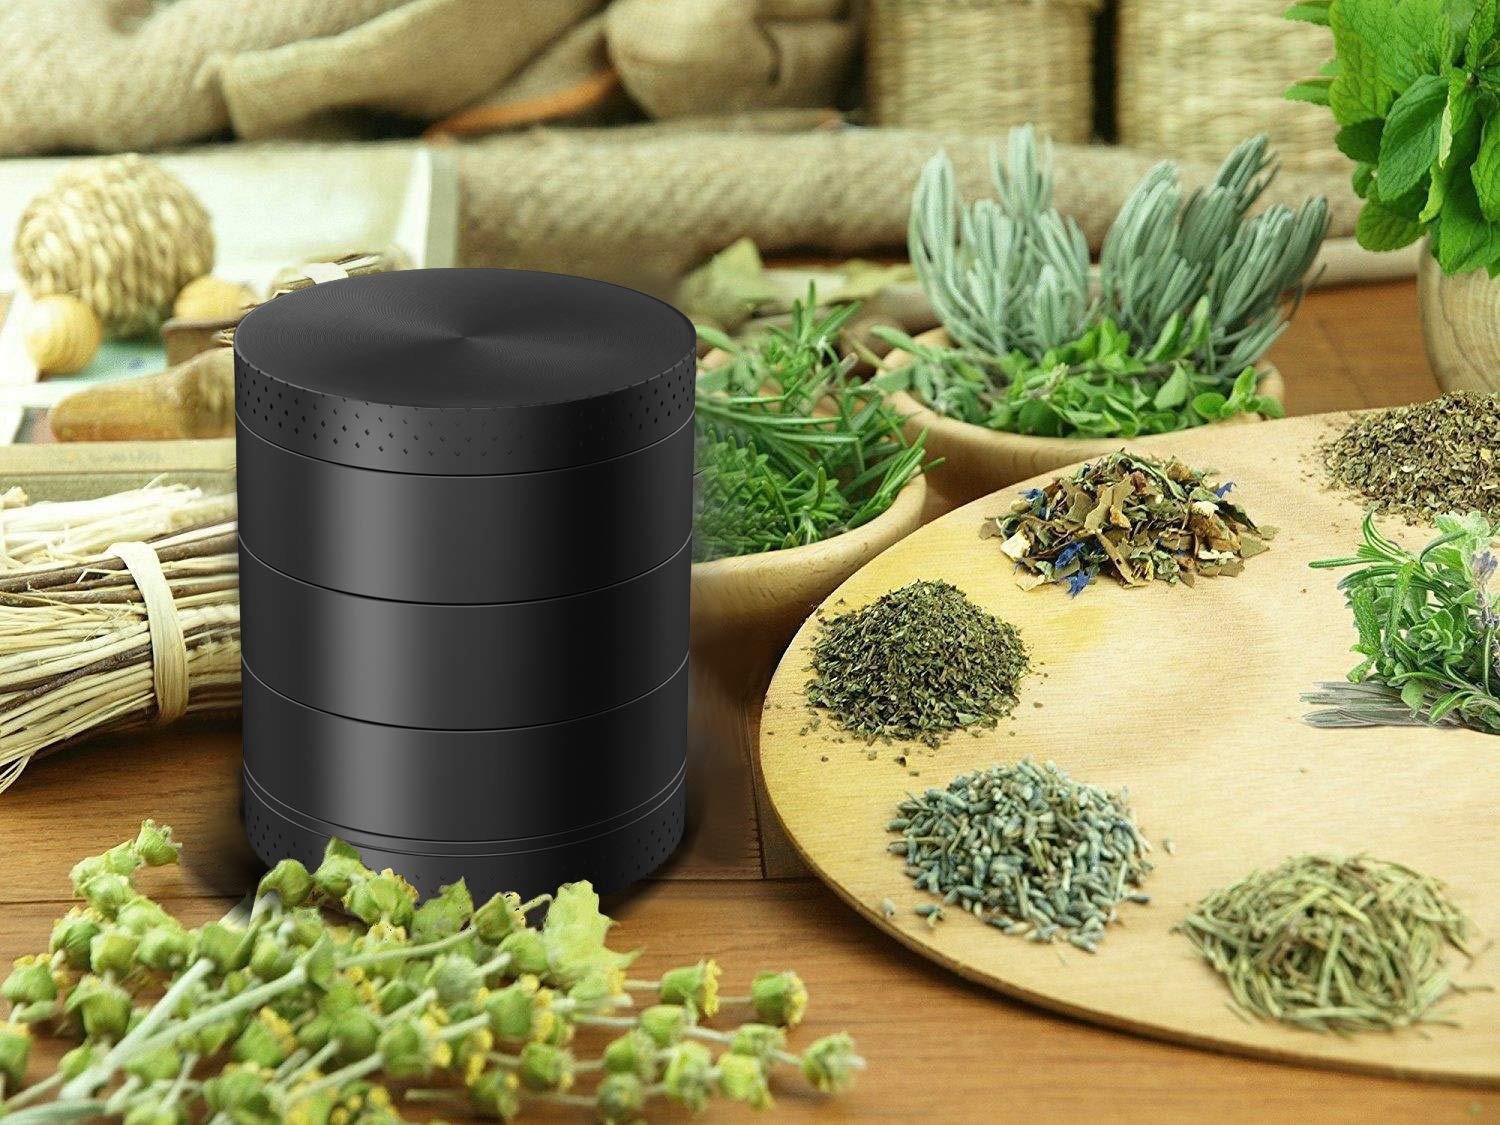 Spice Herb Grinder Aluminum Alloy Crusher ZHENDUO Grinder 5 Piece Herb Grinder 2.1 Inches Metal Grinder with Pollen Catcher